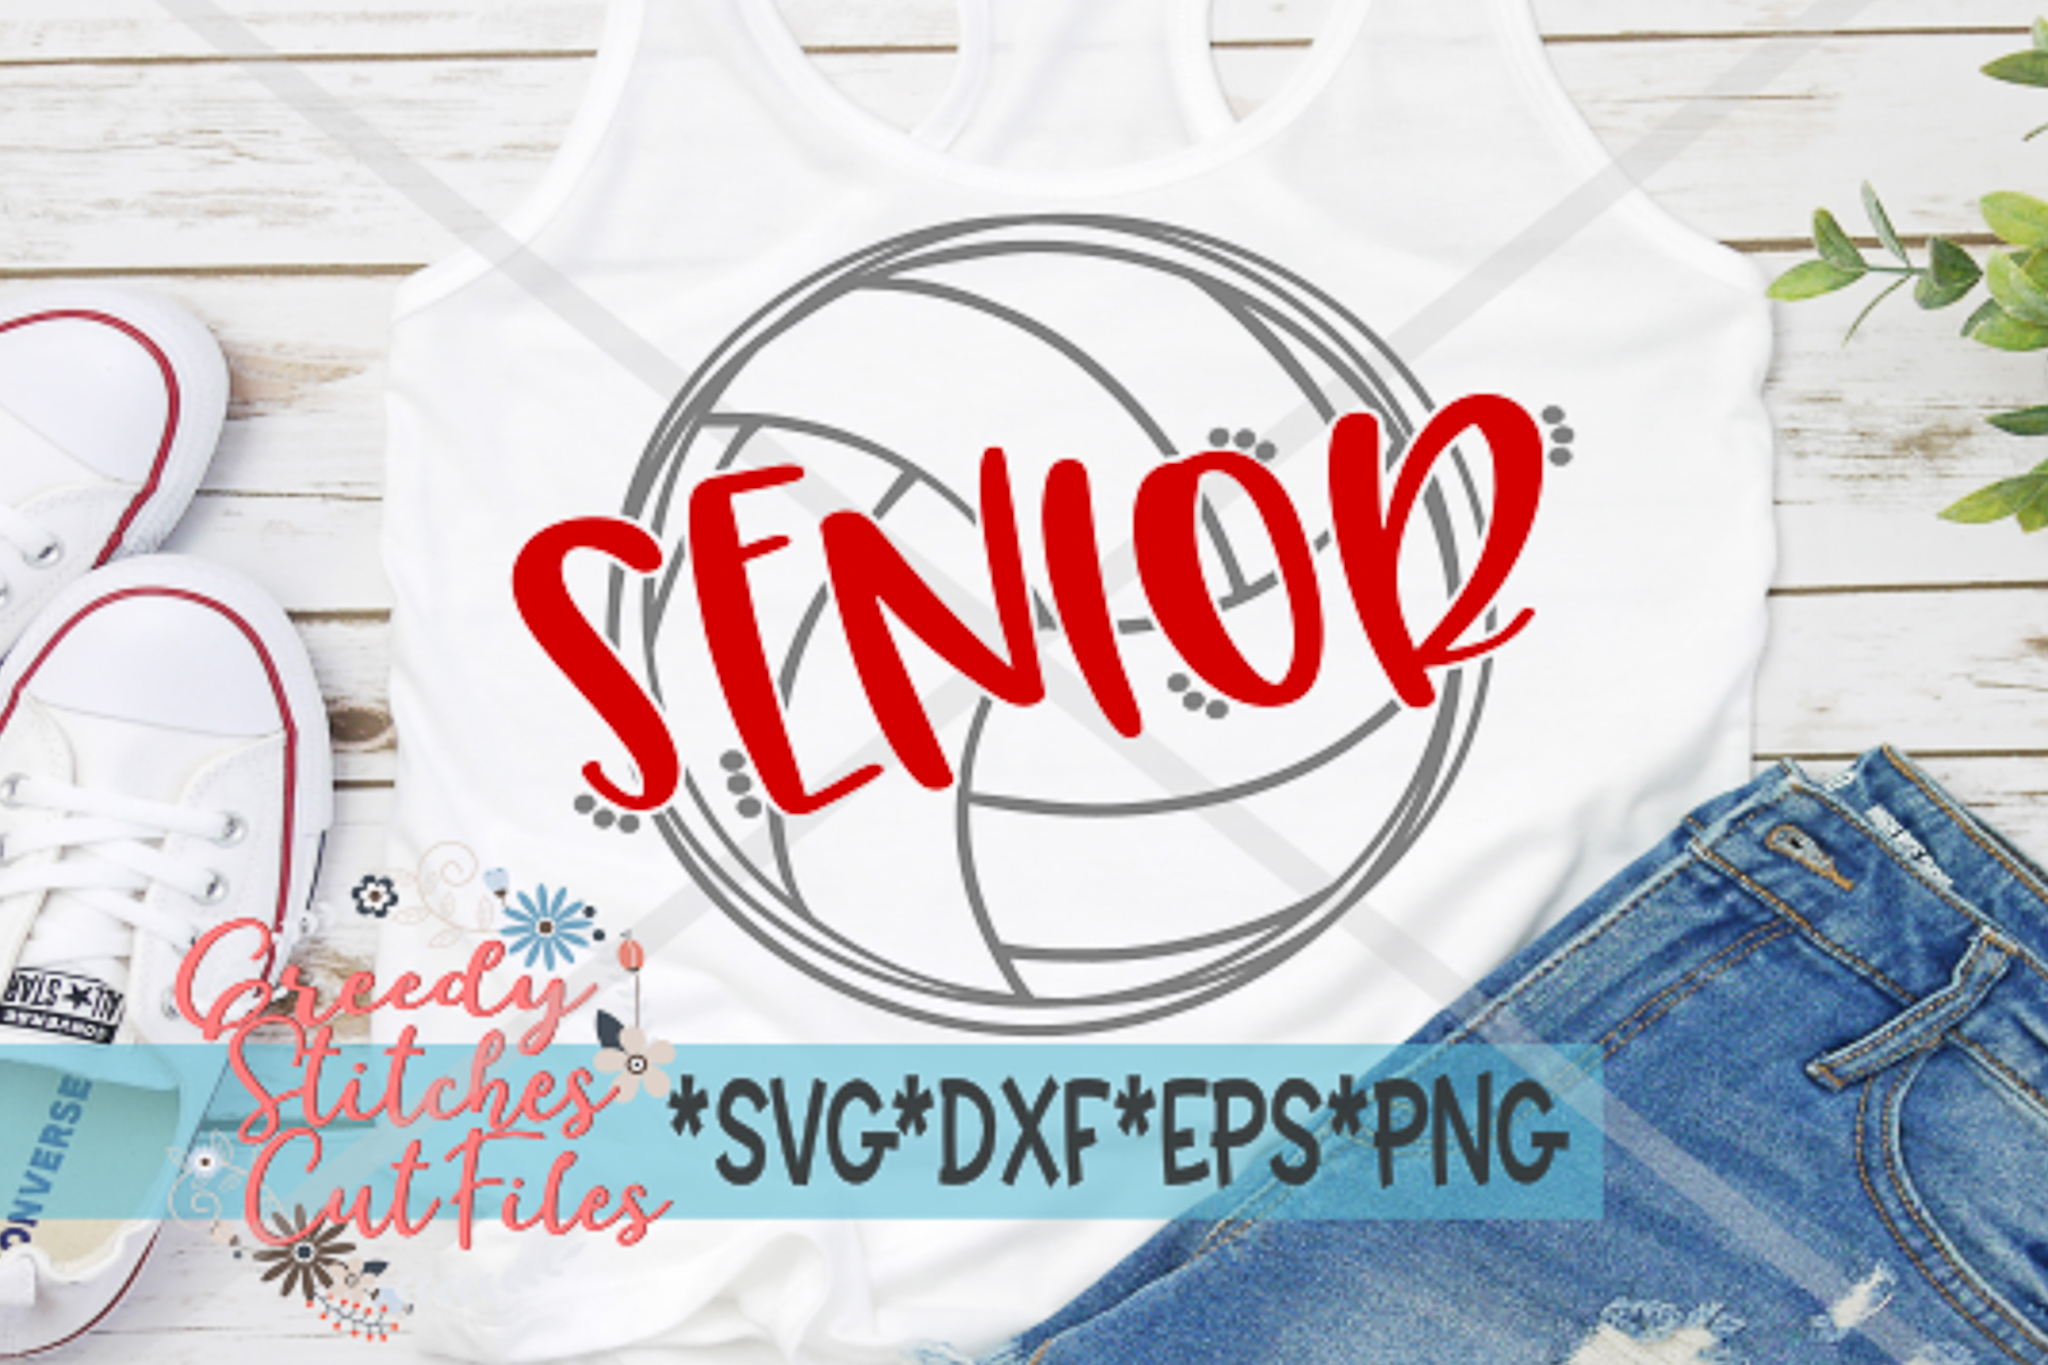 Senior Volleyball SVG, DXF, EPS, PNG Files example image 3